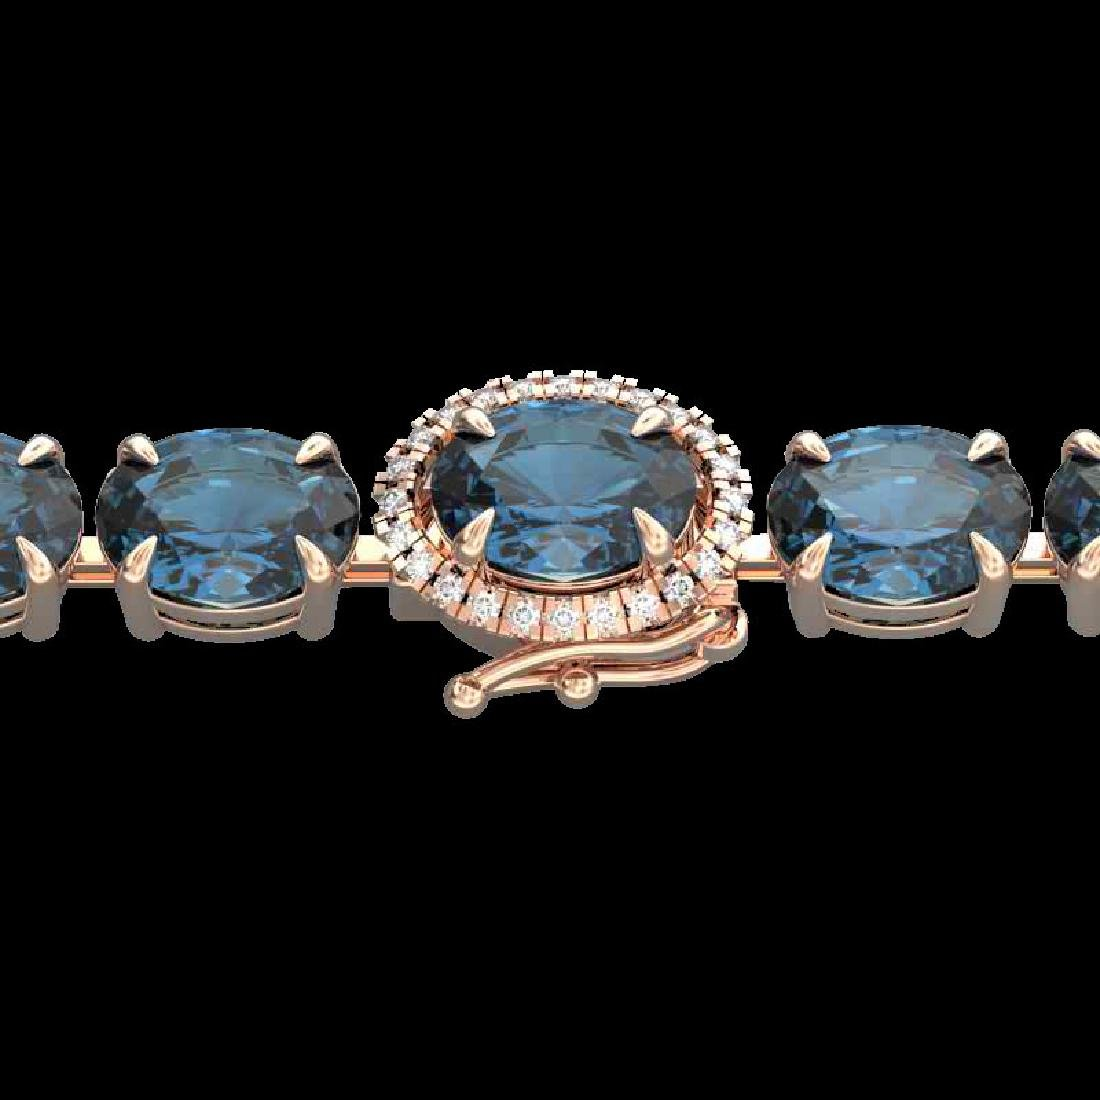 19.25 CTW London Blue Topaz & VS/SI Diamond Tennis